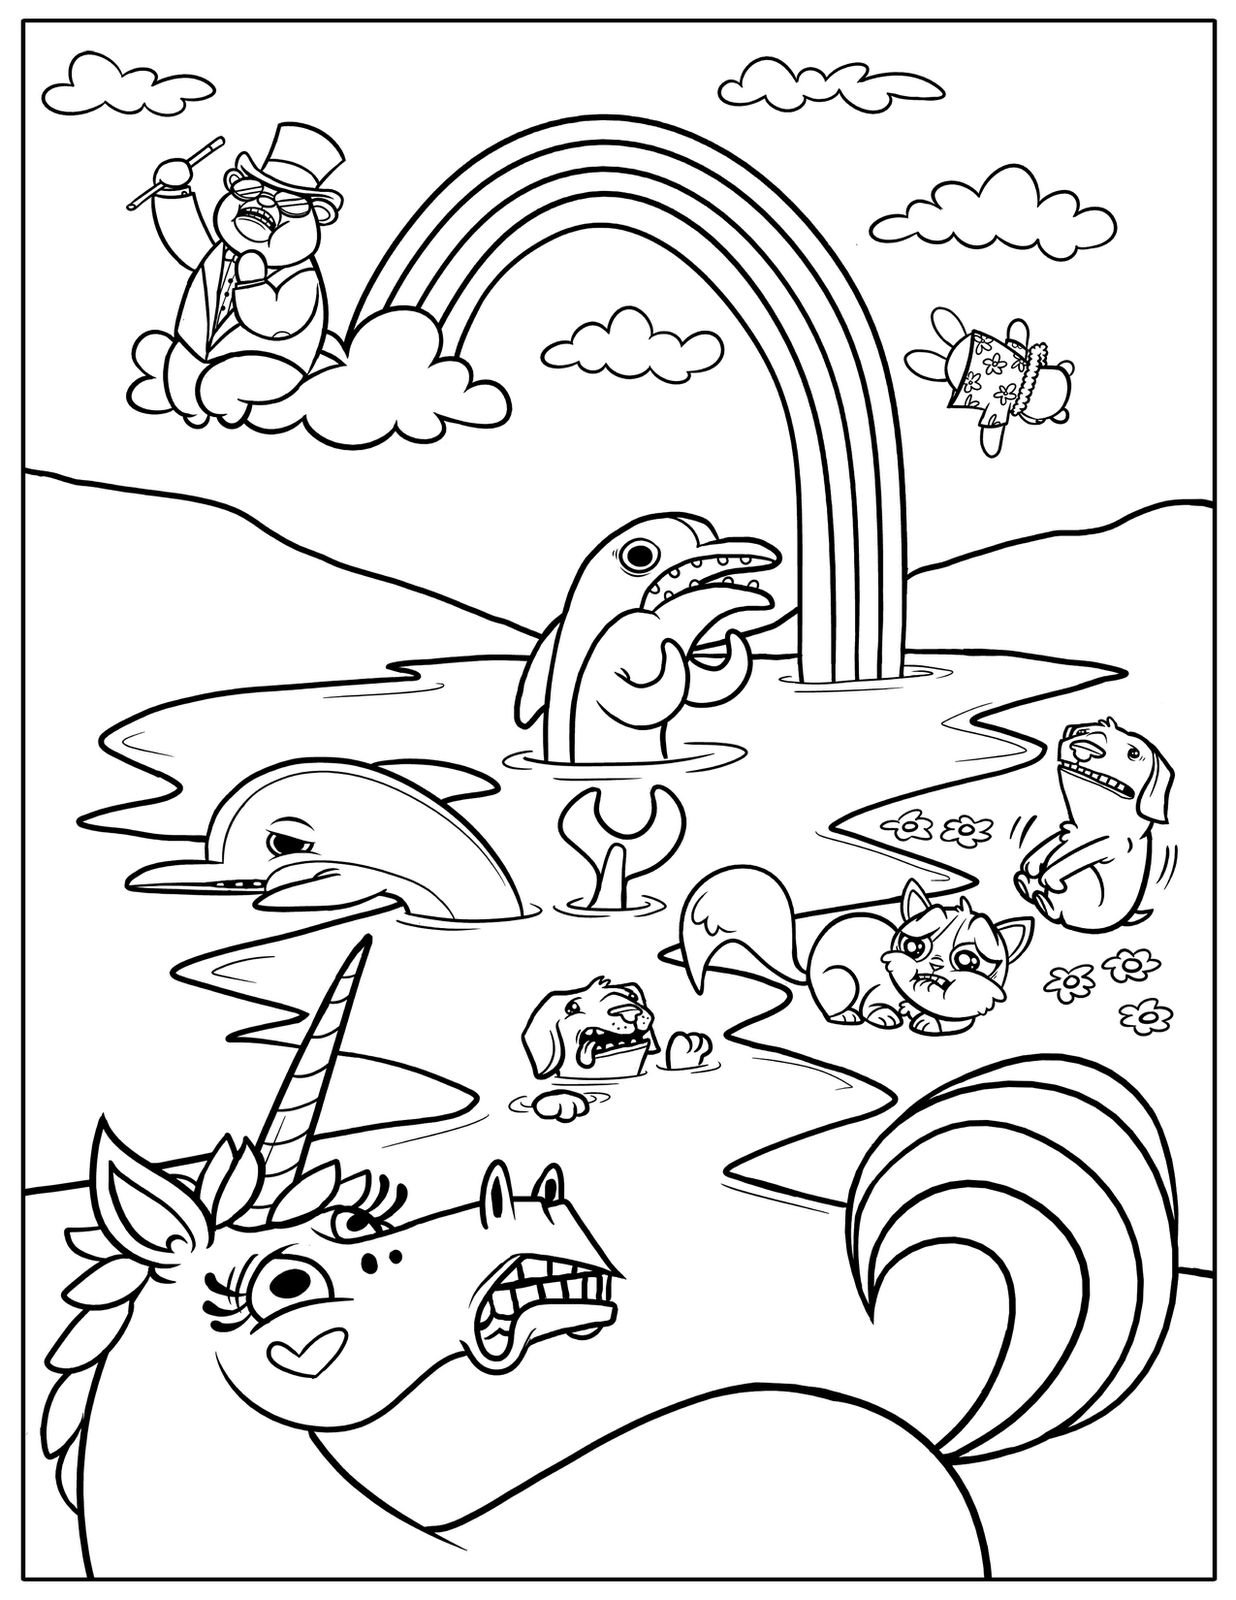 magic coloring sheets rainbow magic coloring pages to download and print for free magic coloring sheets